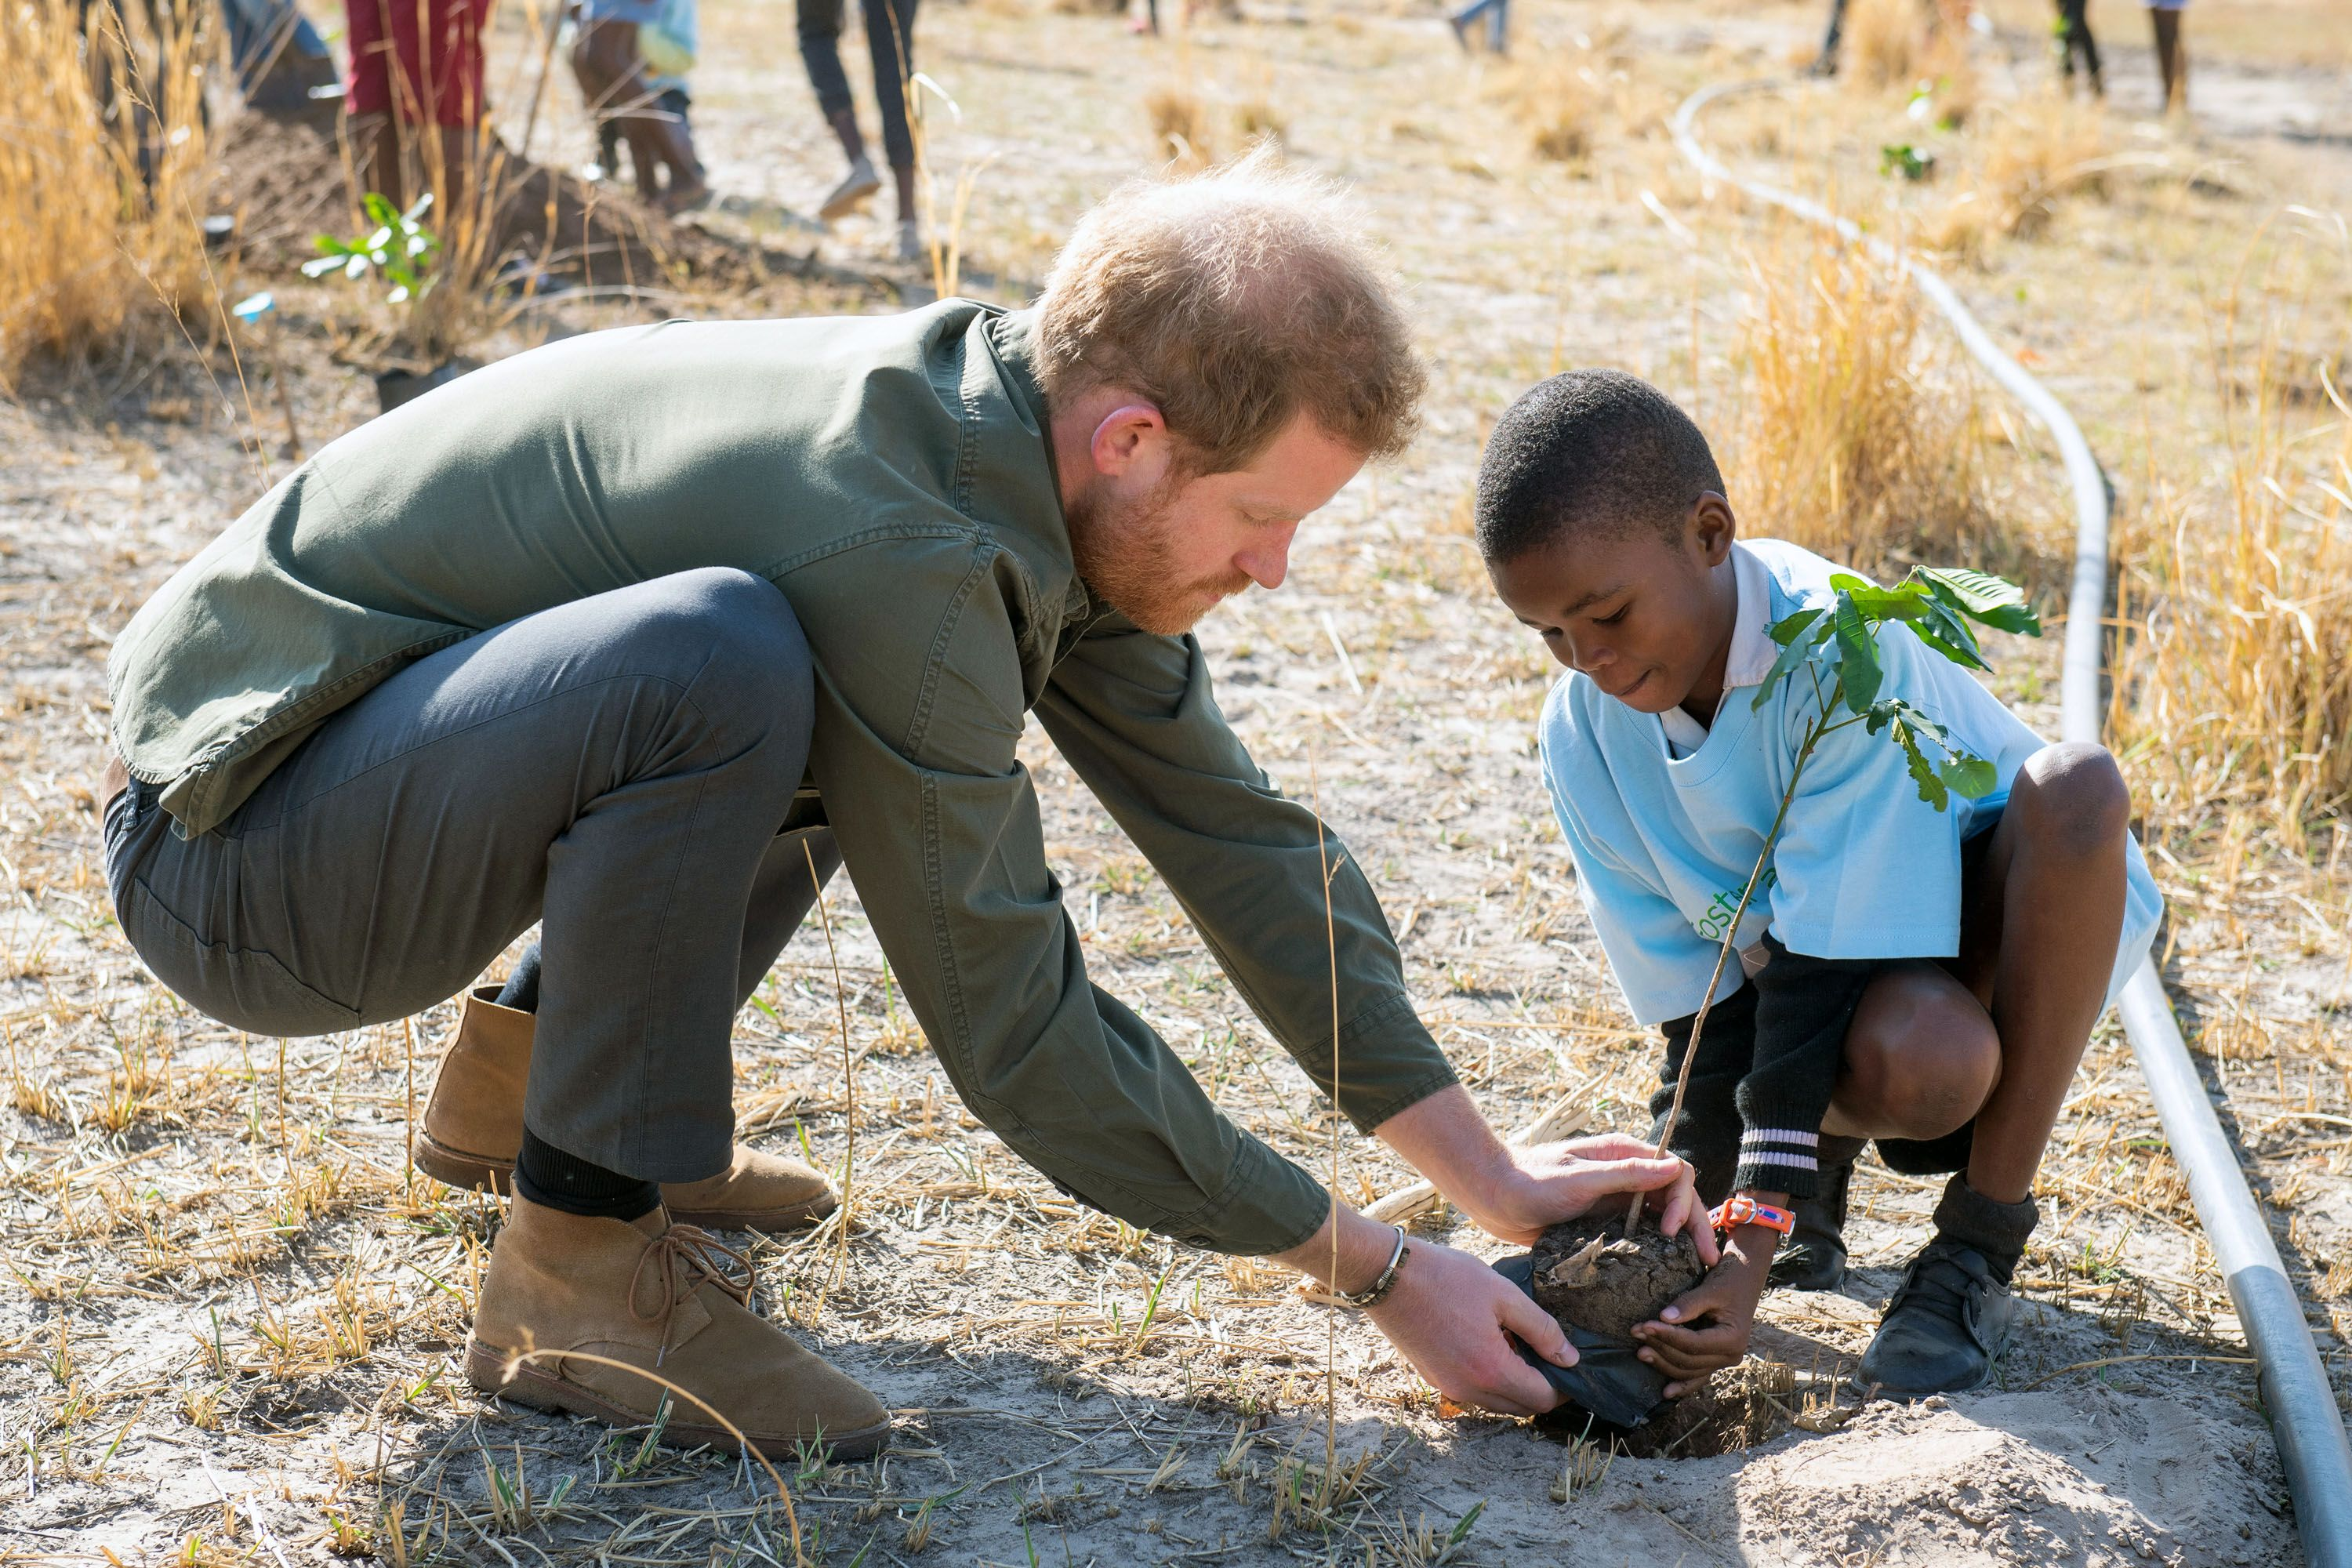 Prince Harry unveils new conservation project in Angola on royal tour of South Africa